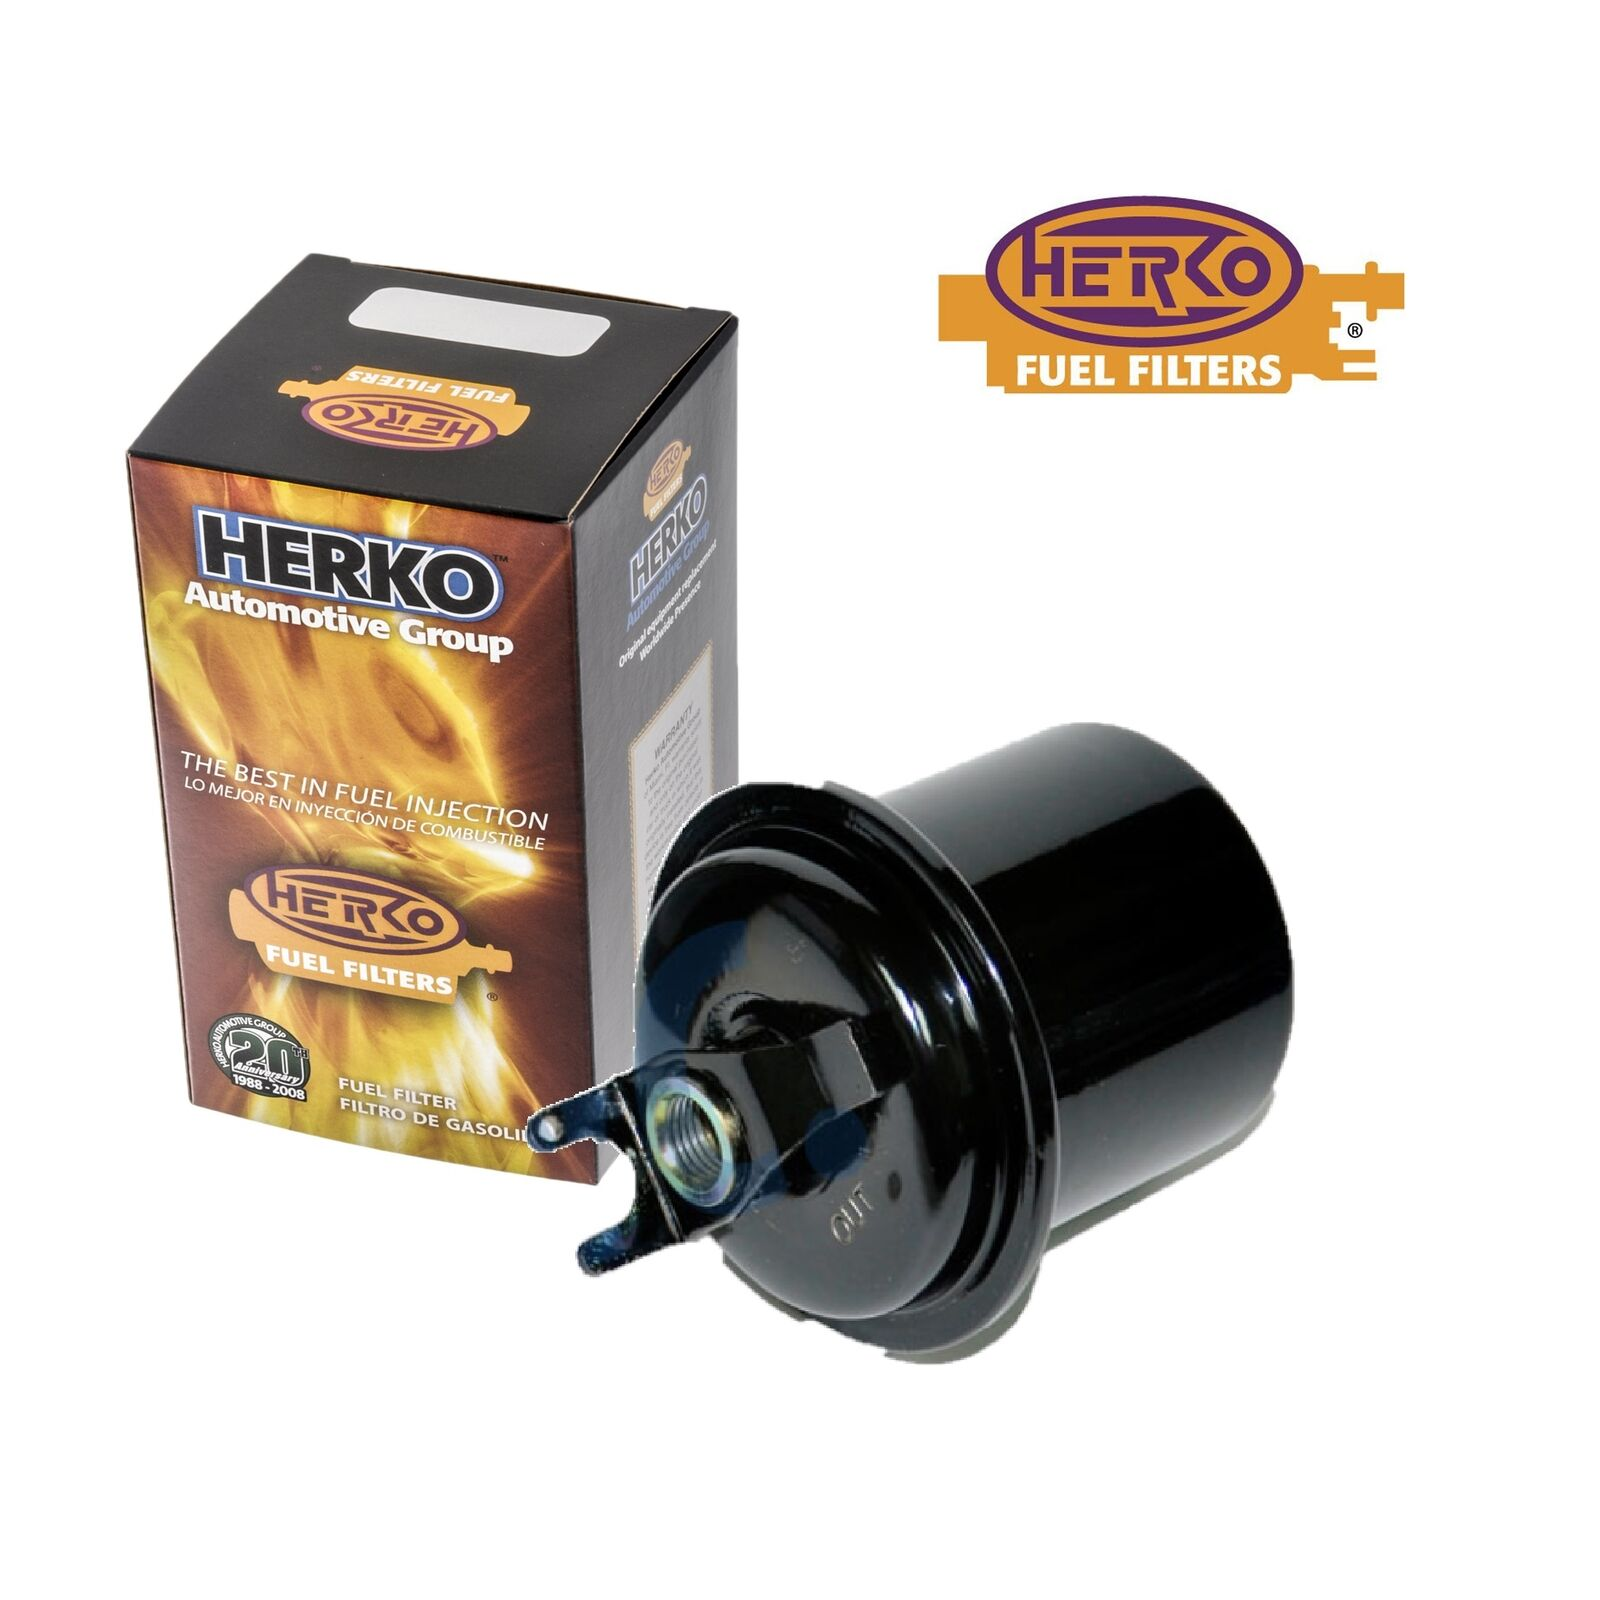 New Herko Fuel Filter Fih05 For Acura Honda Isuzu 1994 2001 849 Filters 1 Of 5 See More